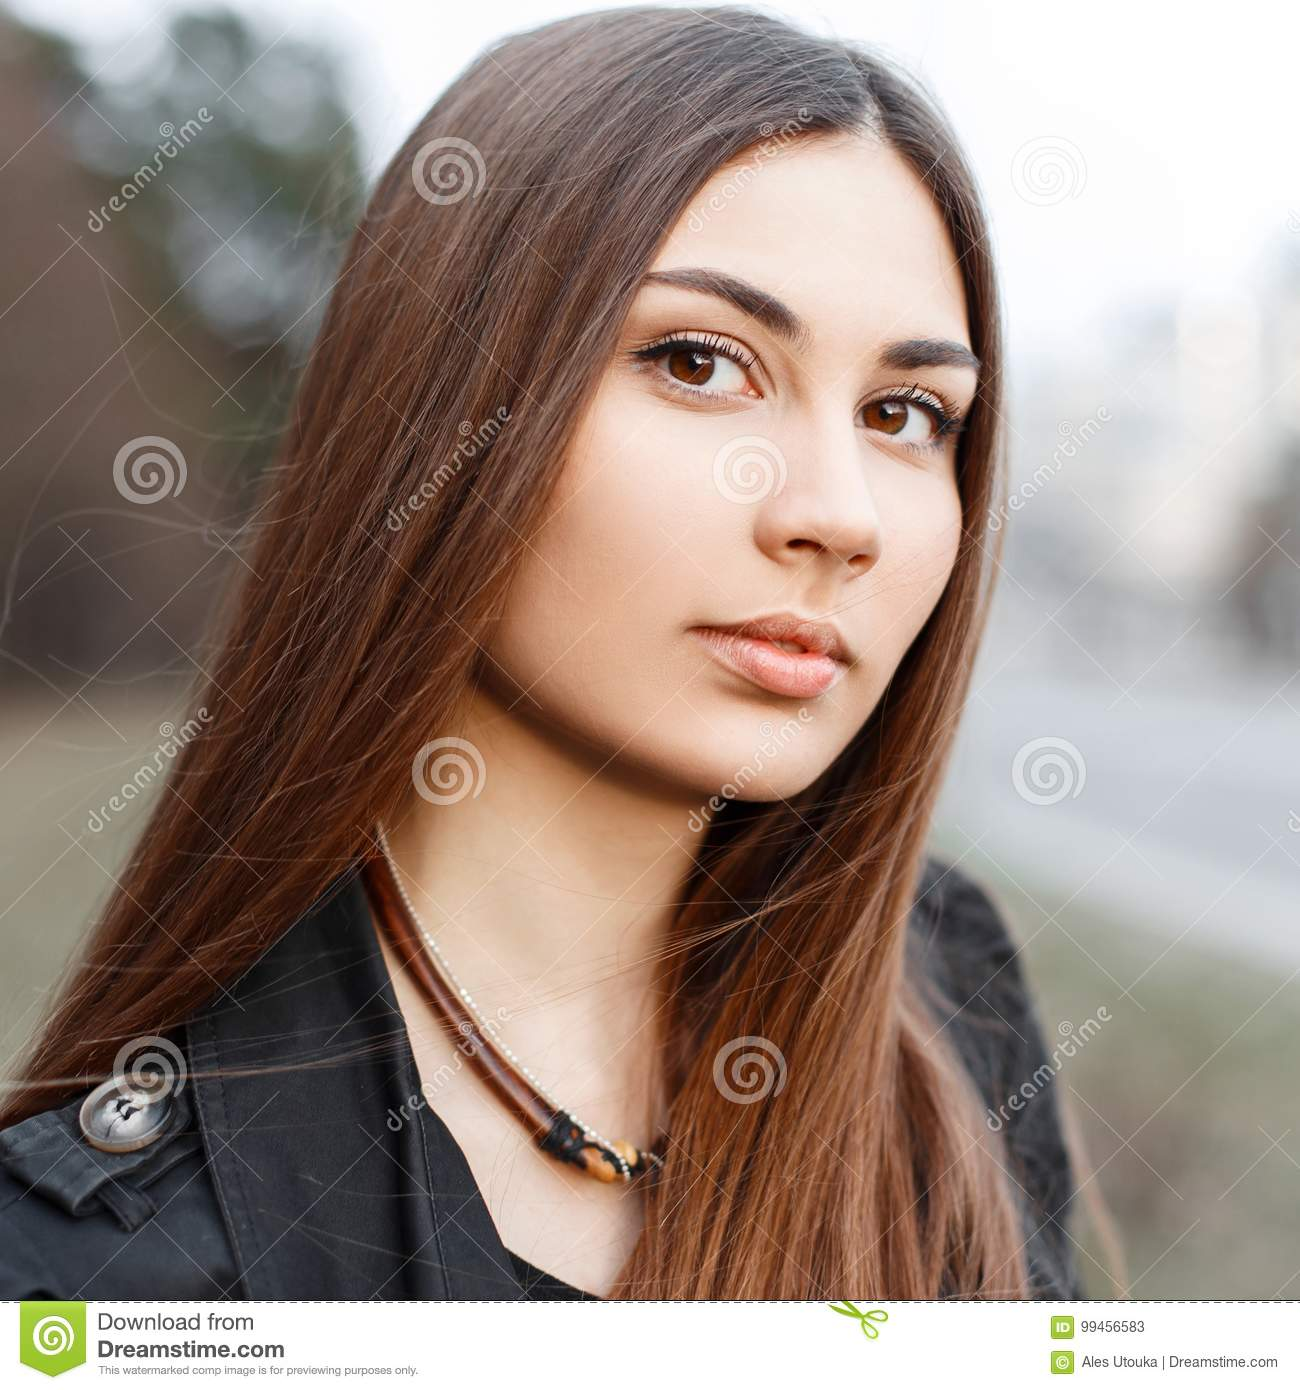 Close-up portrait of a beautiful young girl with amazing brown e